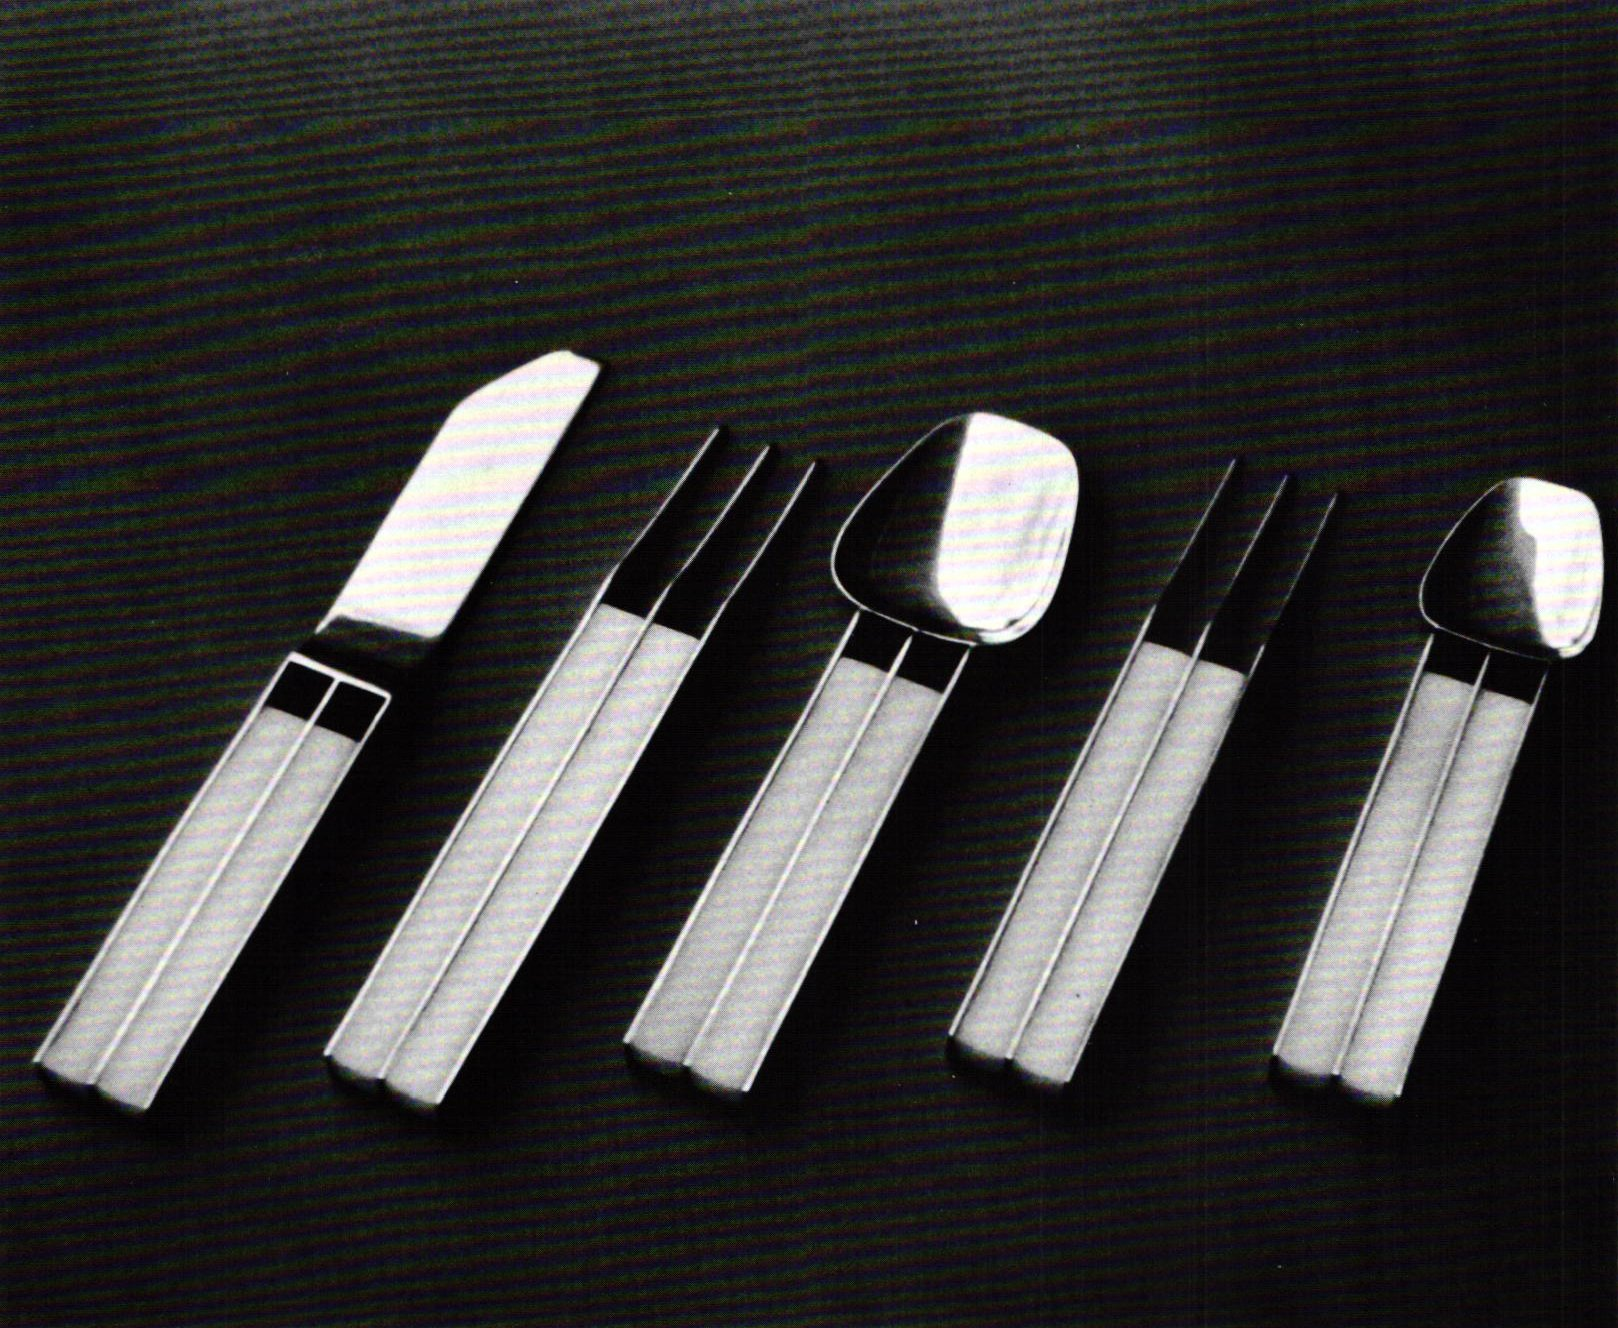 designing contemporary flatware  ganoksin jewelry making community - (figure ) john j horn silhouette pattern flatware sterling silverdelrin